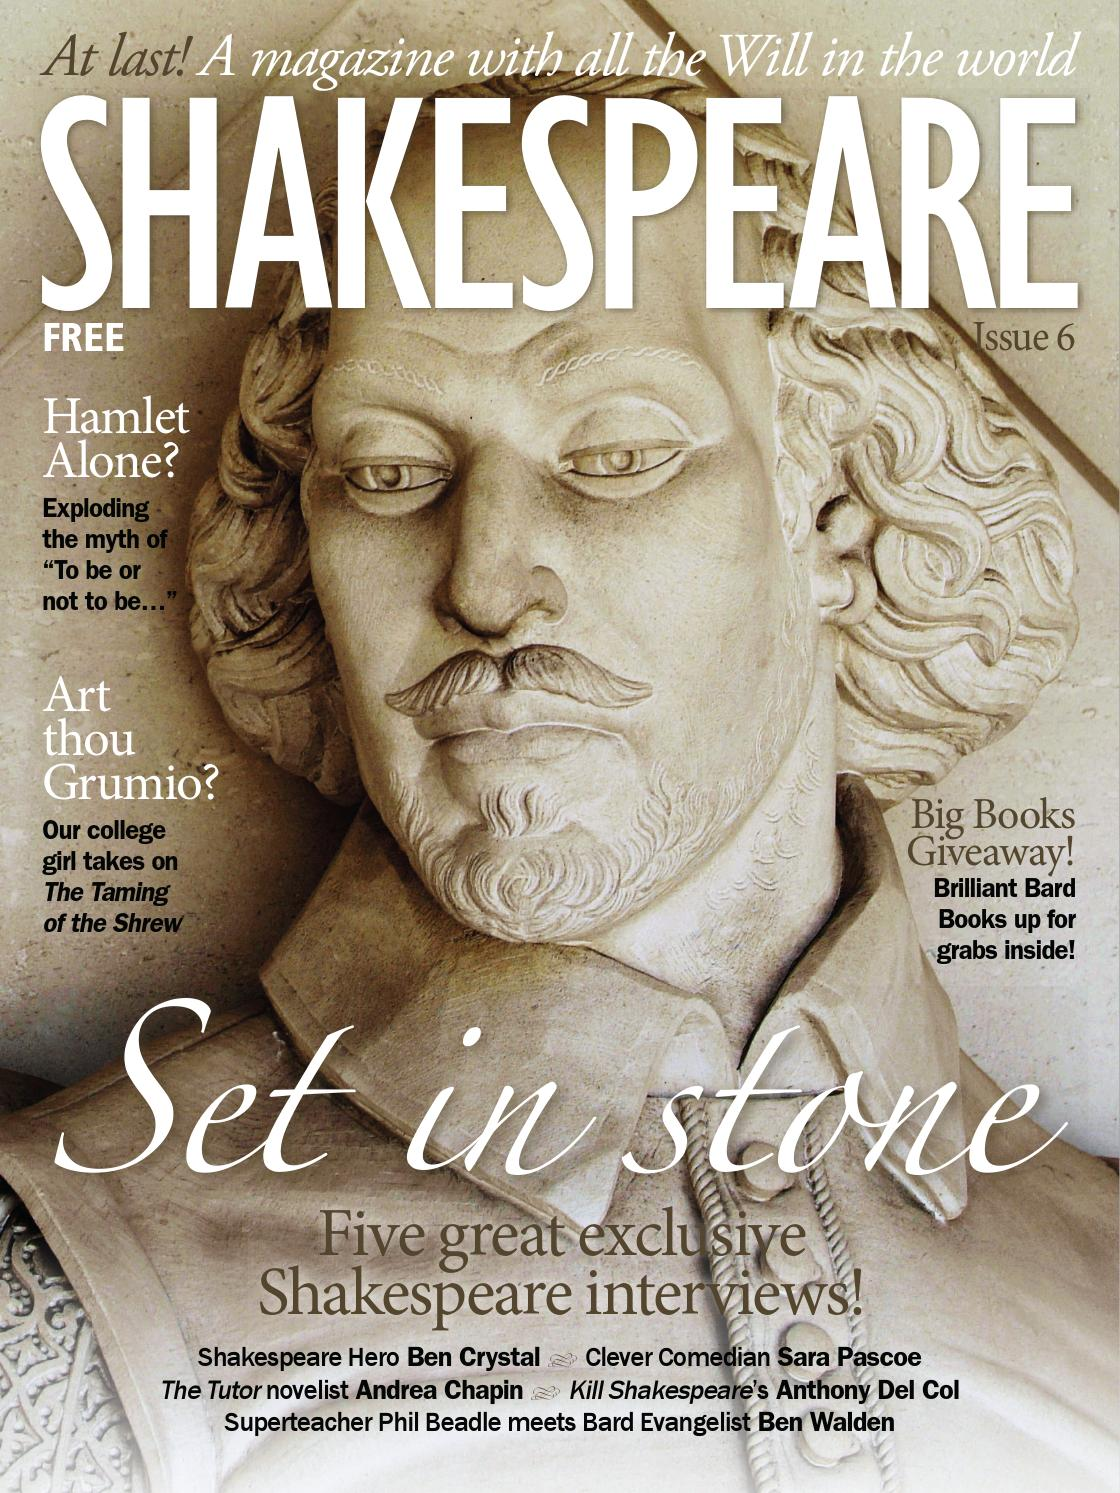 How did sonnet 29 by shakesphere illistrate the rising tide of reenaissance humanism?